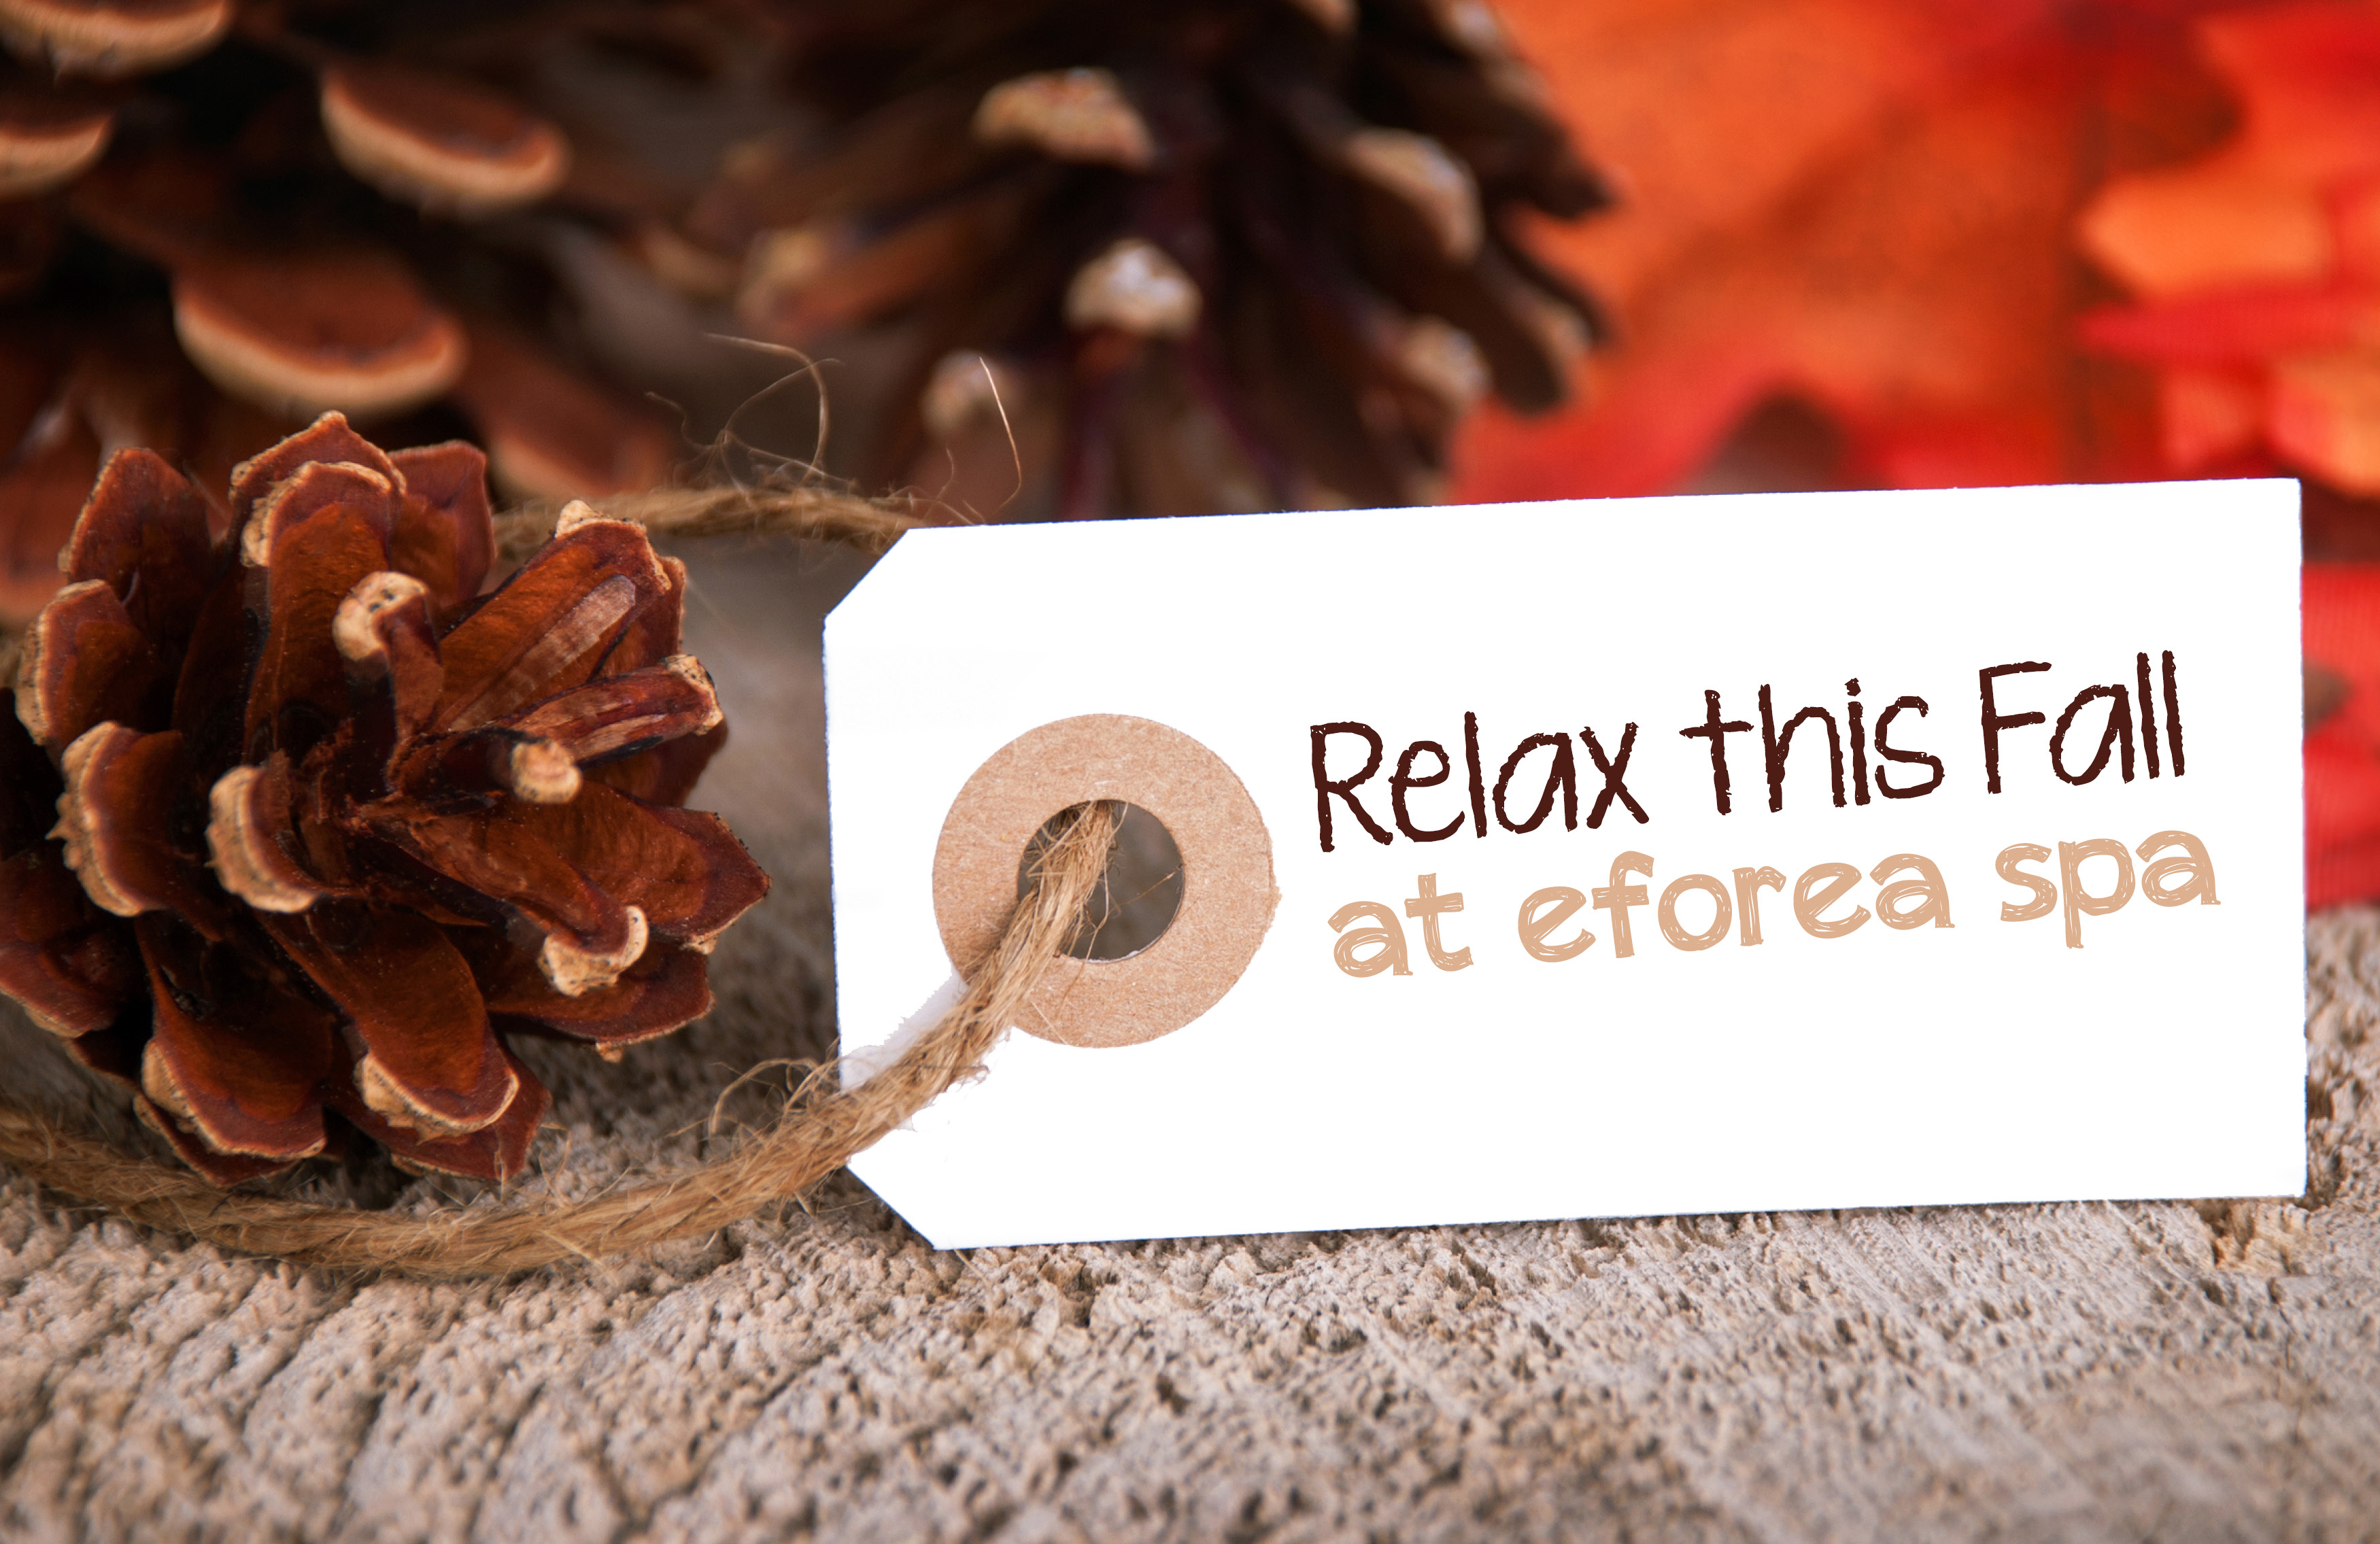 Duplicate of Fall Specials at Eforea Spa